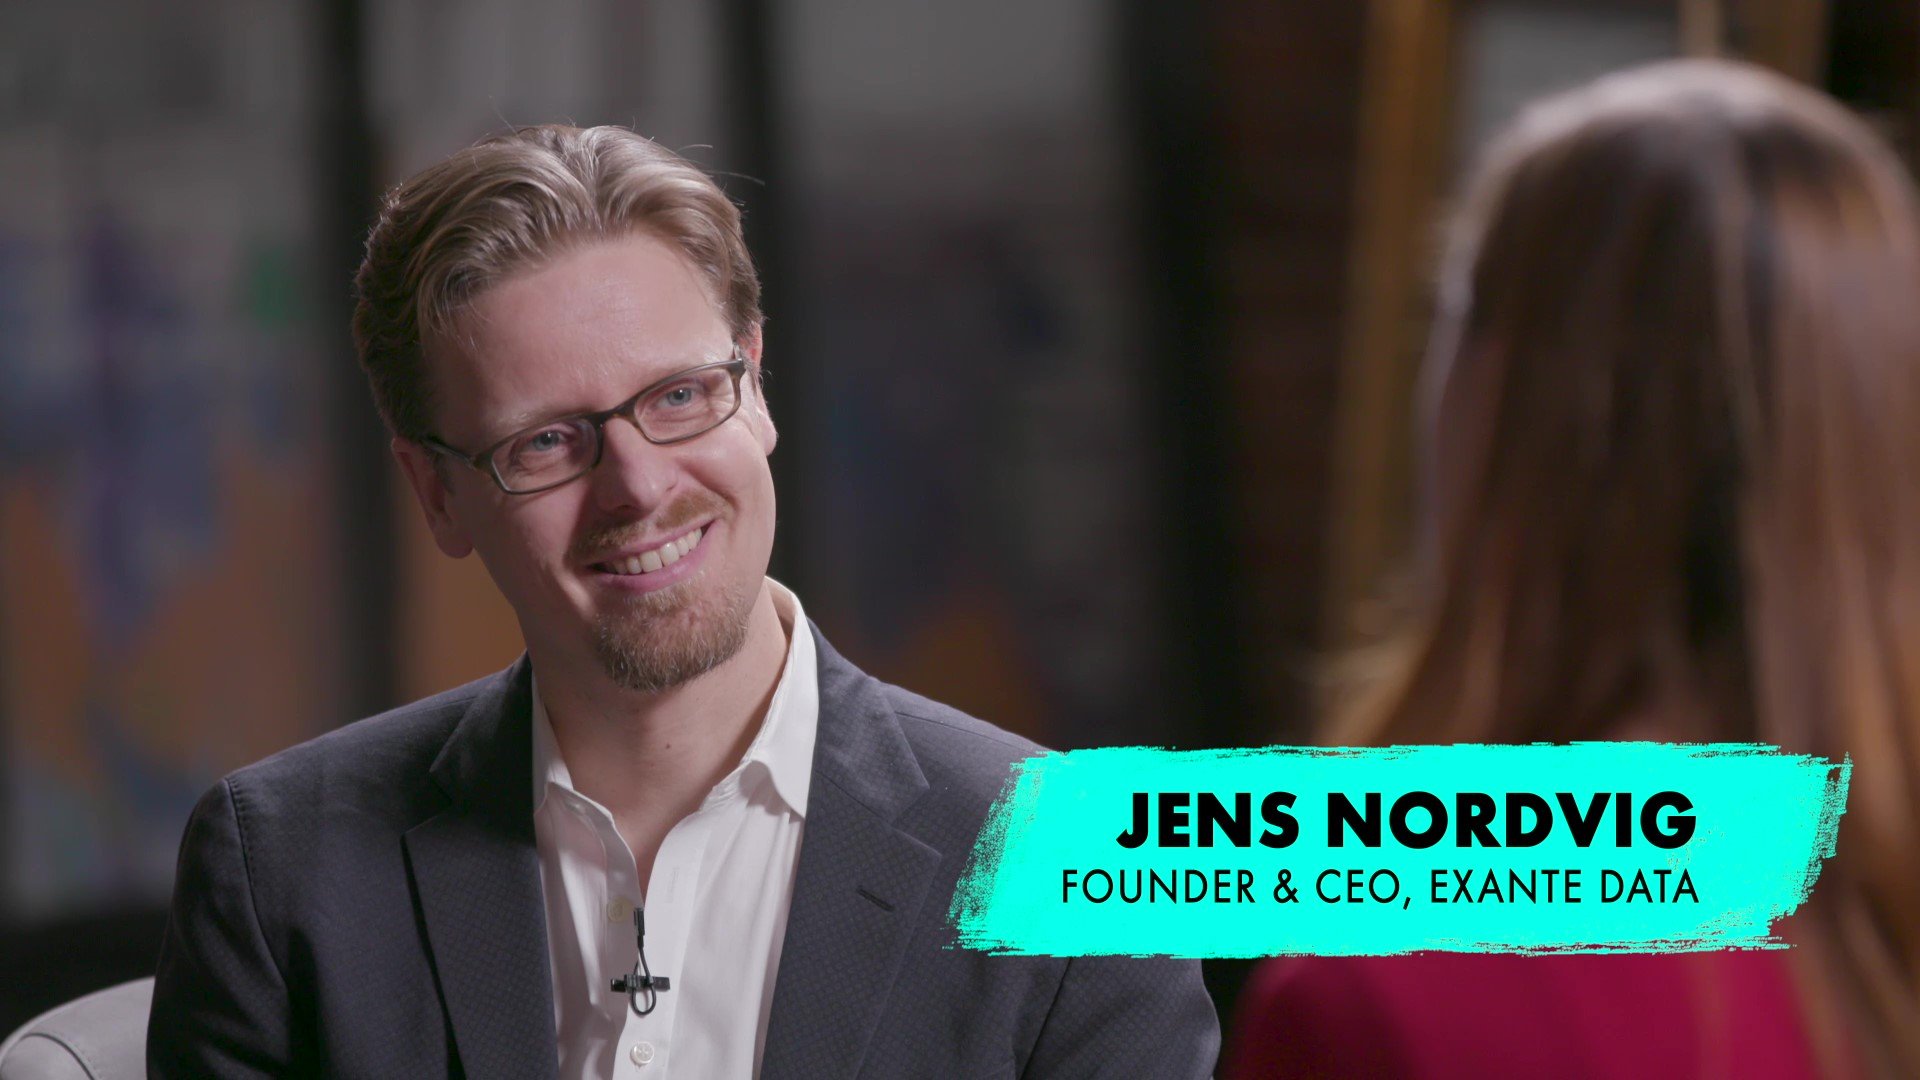 Video: Jens Nordvig discusses Exante Data